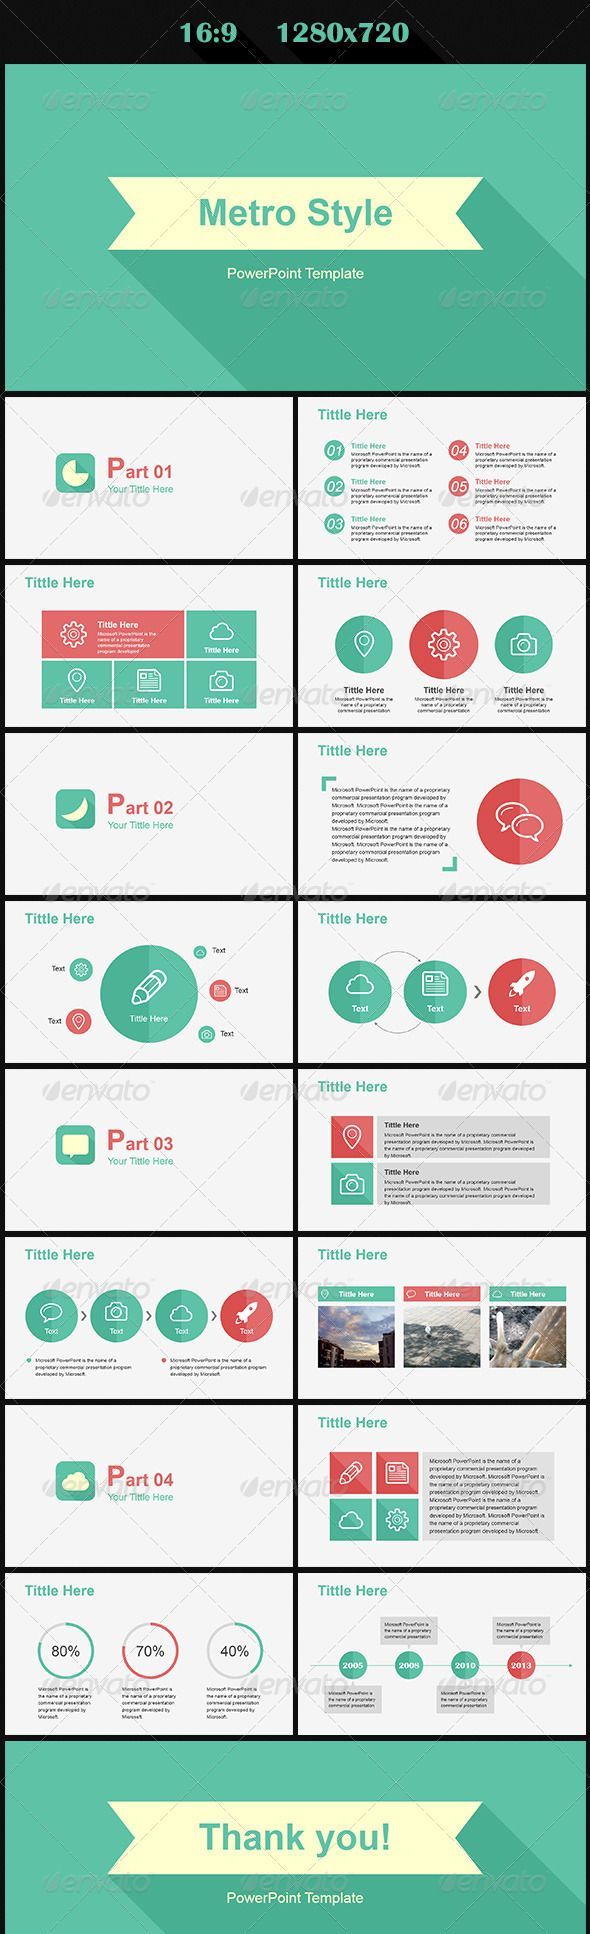 Metro Style #GraphicRiver It's a modern and fashion powerpoint template with metro style. All slides are fully editable. Easy to change colors, text, photos etc. Edit the charts and diagrams to fit your data. Show your business in a clean and elegant way. The pictures are not included in the file. Fonts: Arial Icons (Thanks to): .iconfinder Created: 19October13 PixelDimensions: 1280x720